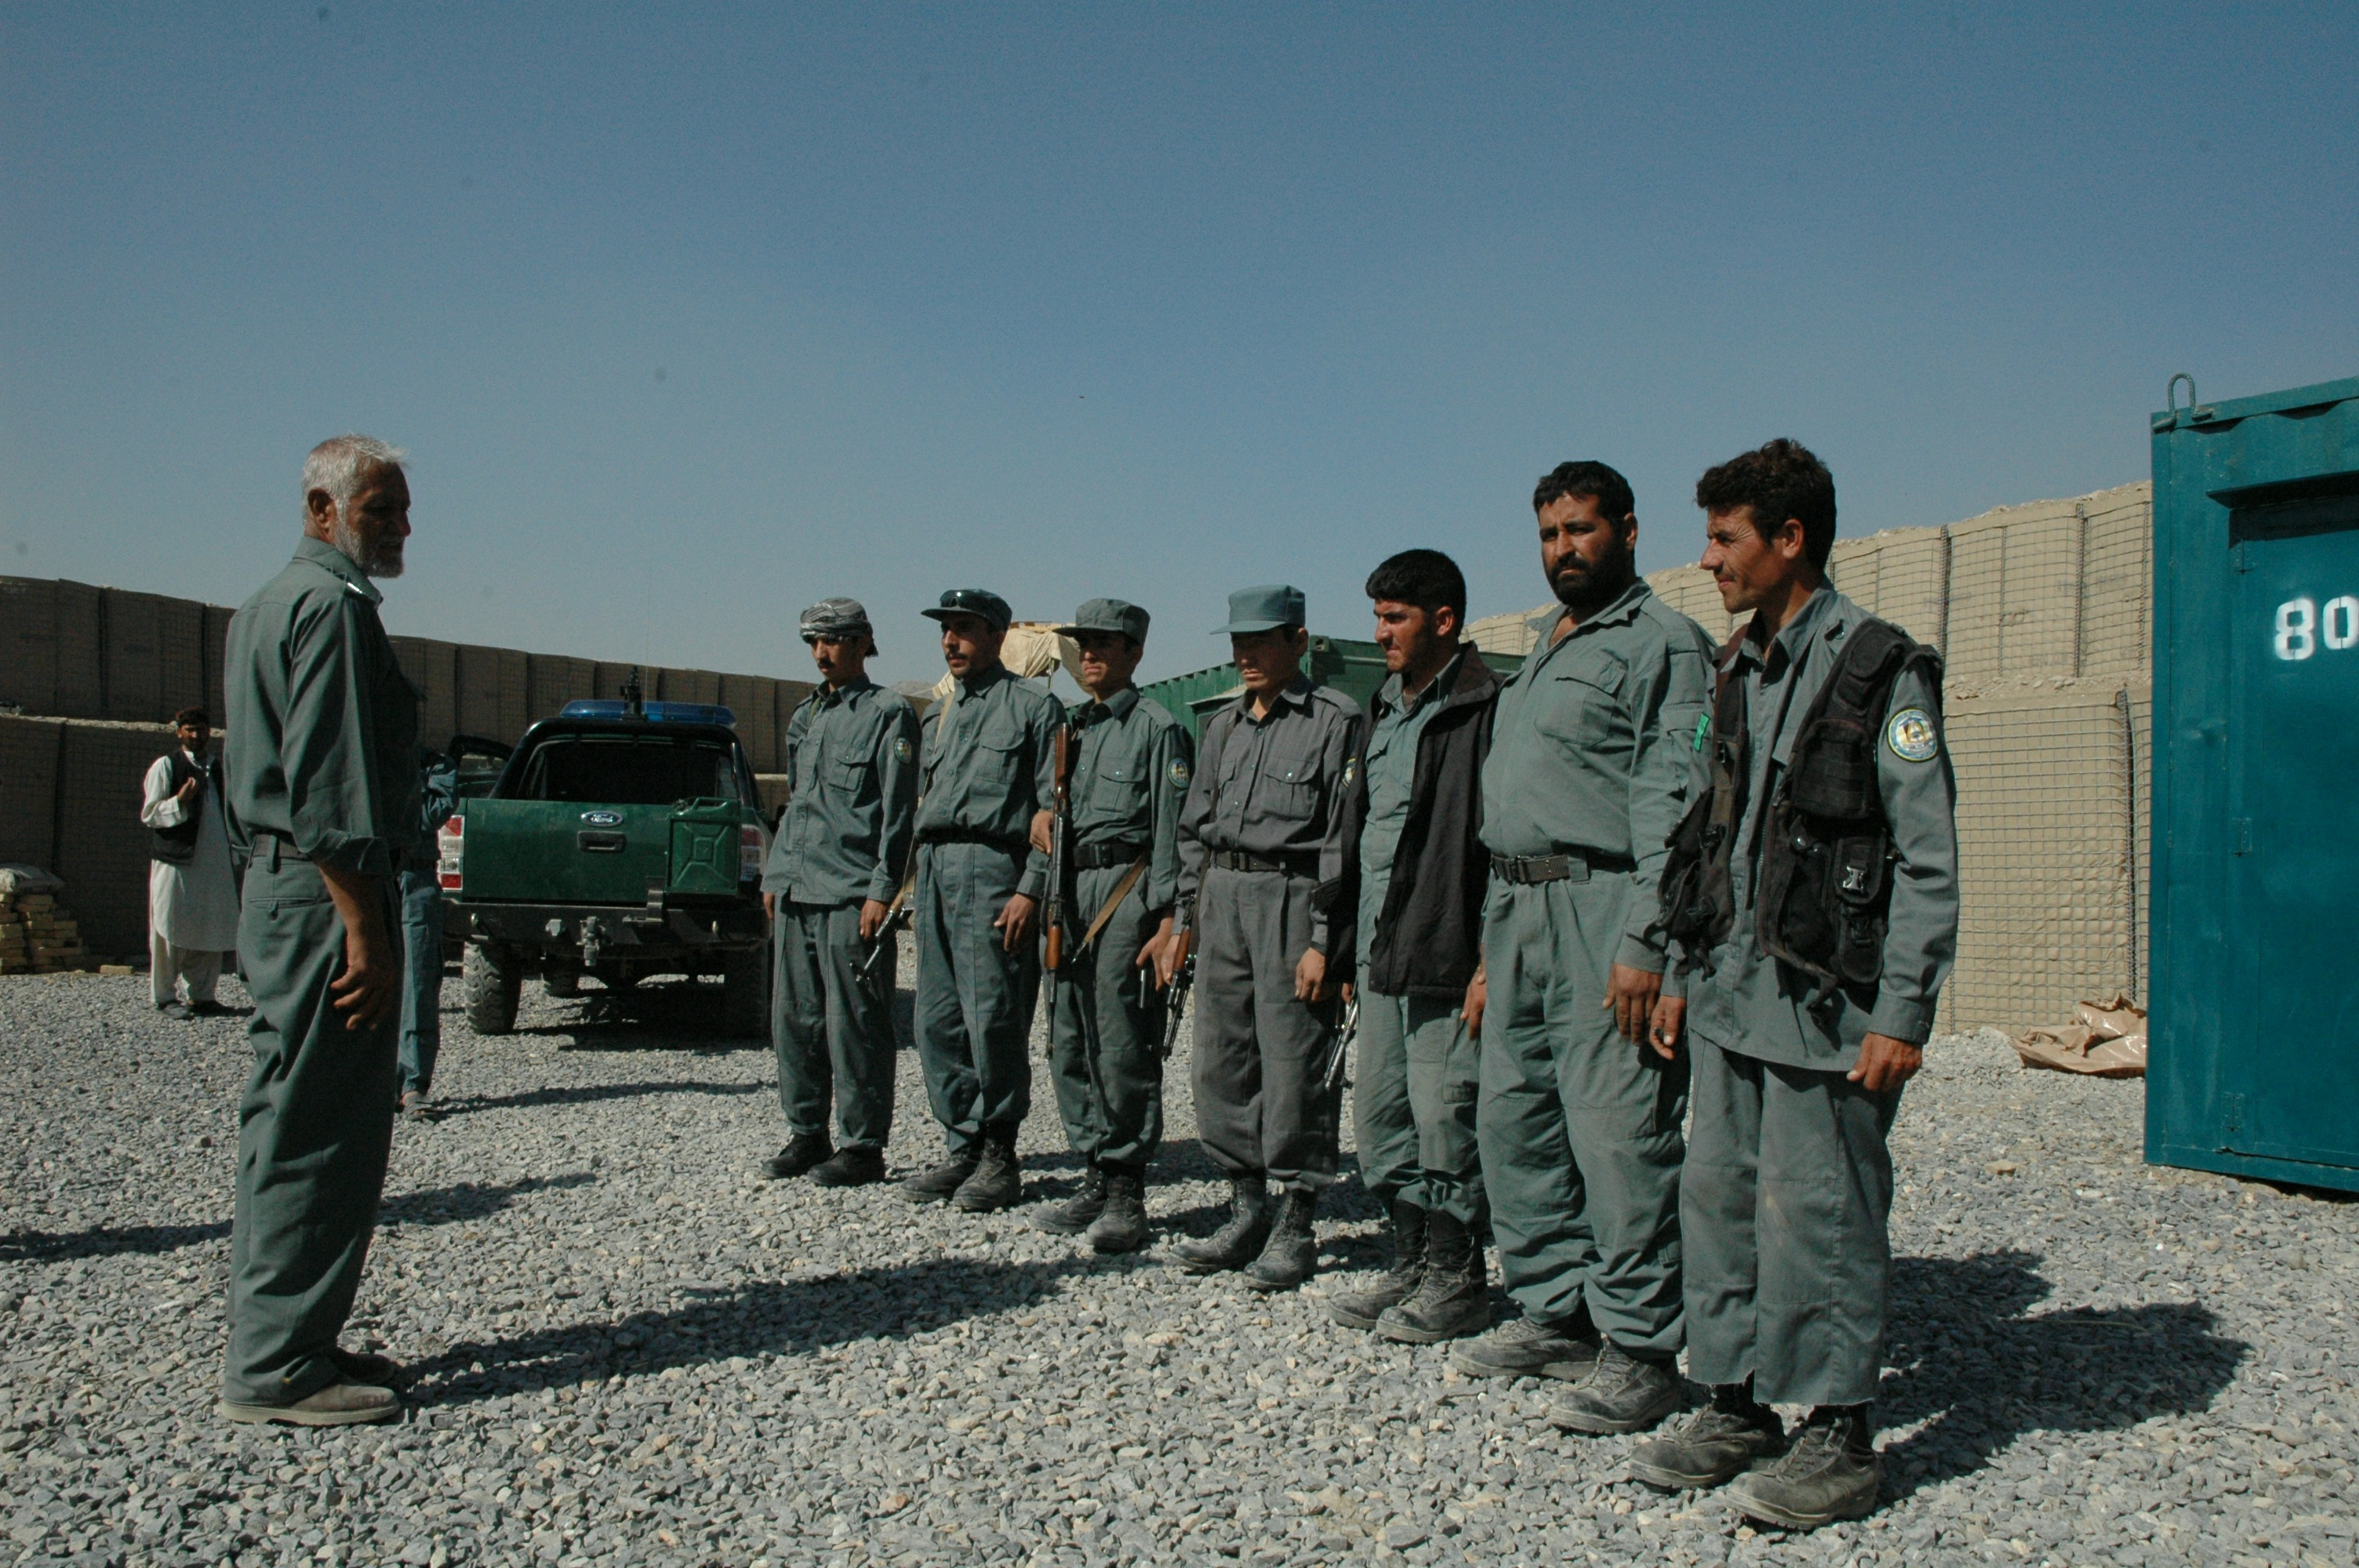 More problems with Afghan police training